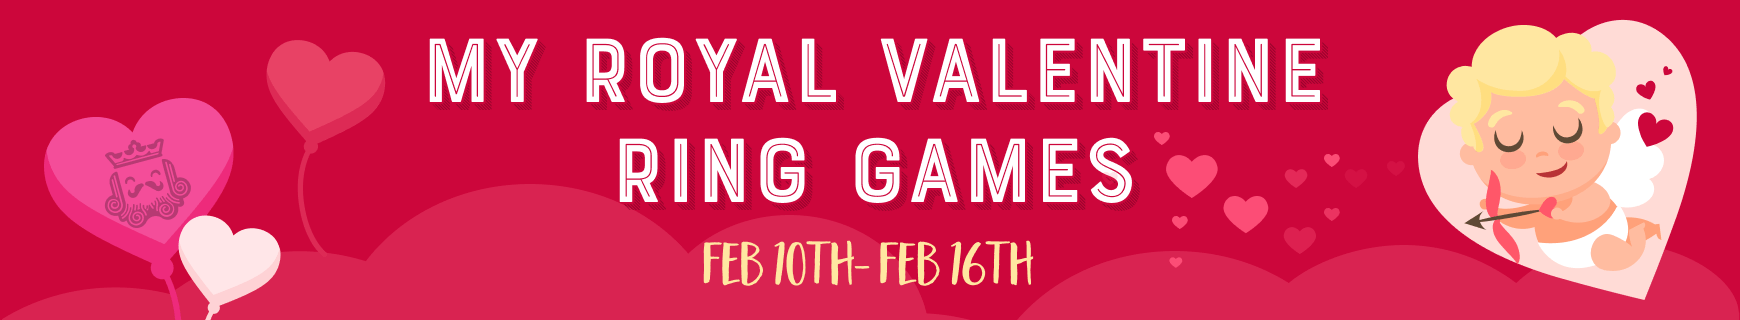 My royal valentine ring game   dashboard %28870 x 160%29 2x